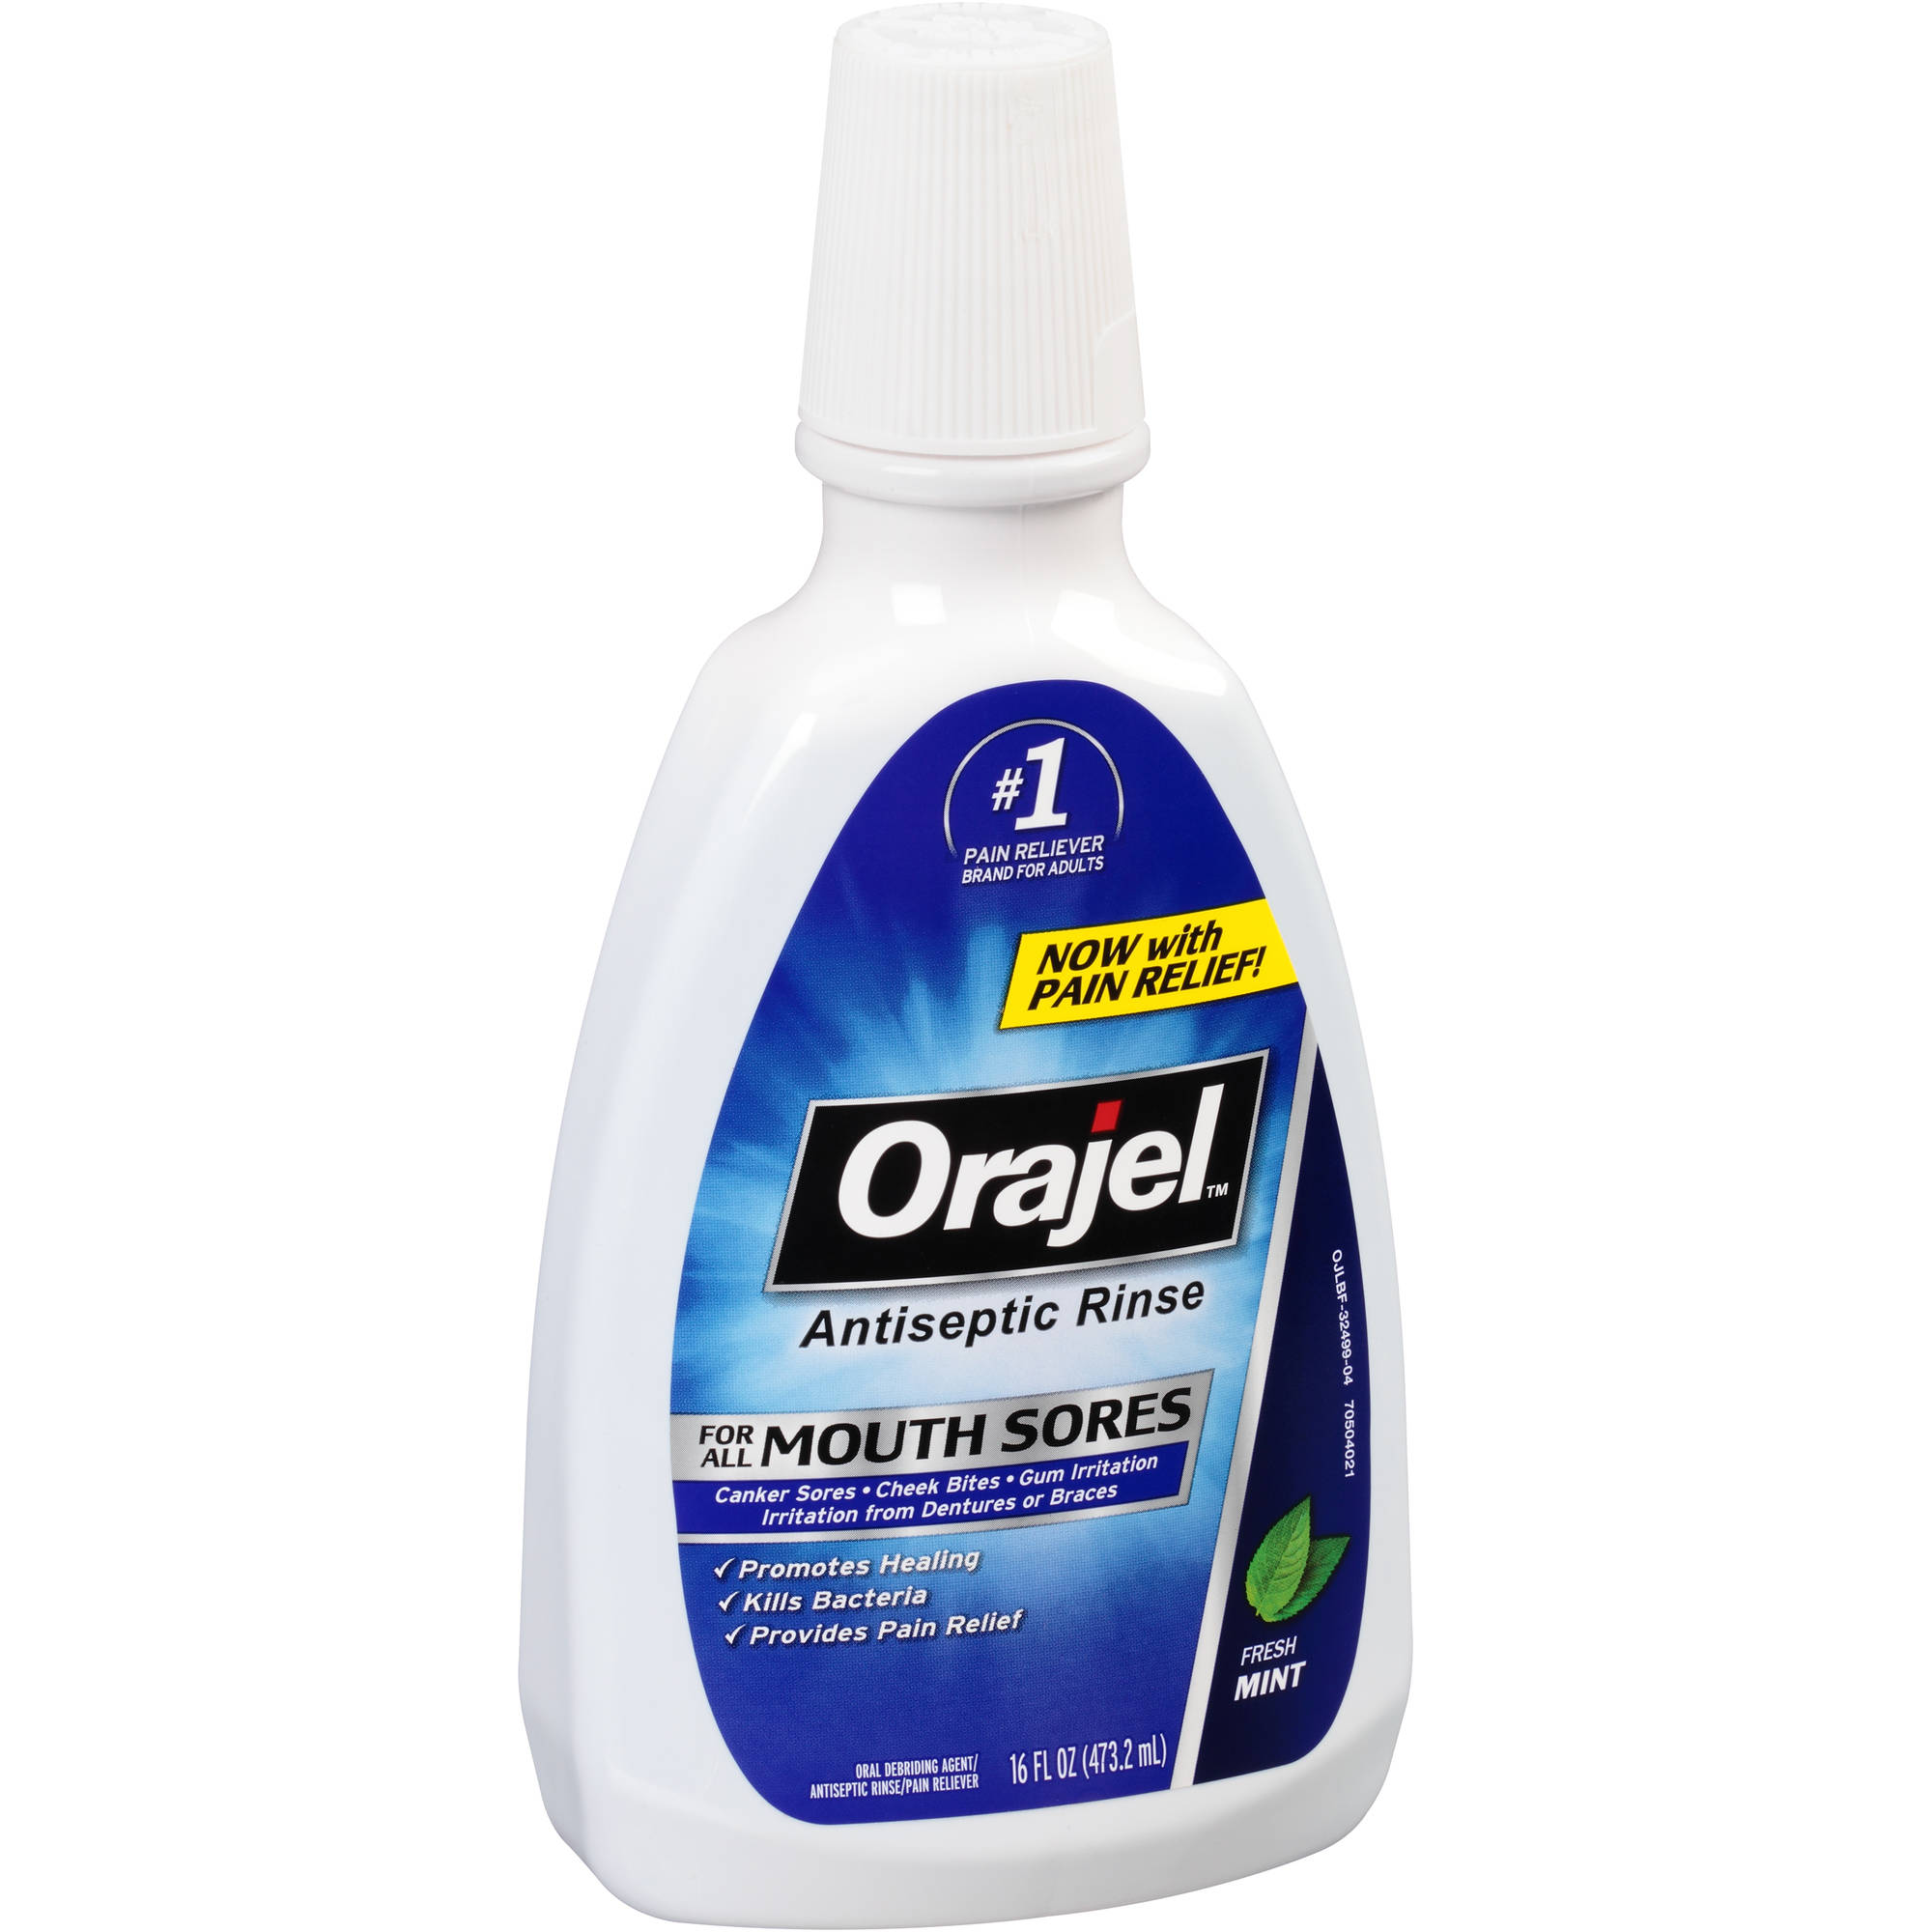 Orajel Fresh Mint Antiseptic Rinse for All Mouth Sores, 16 fl oz